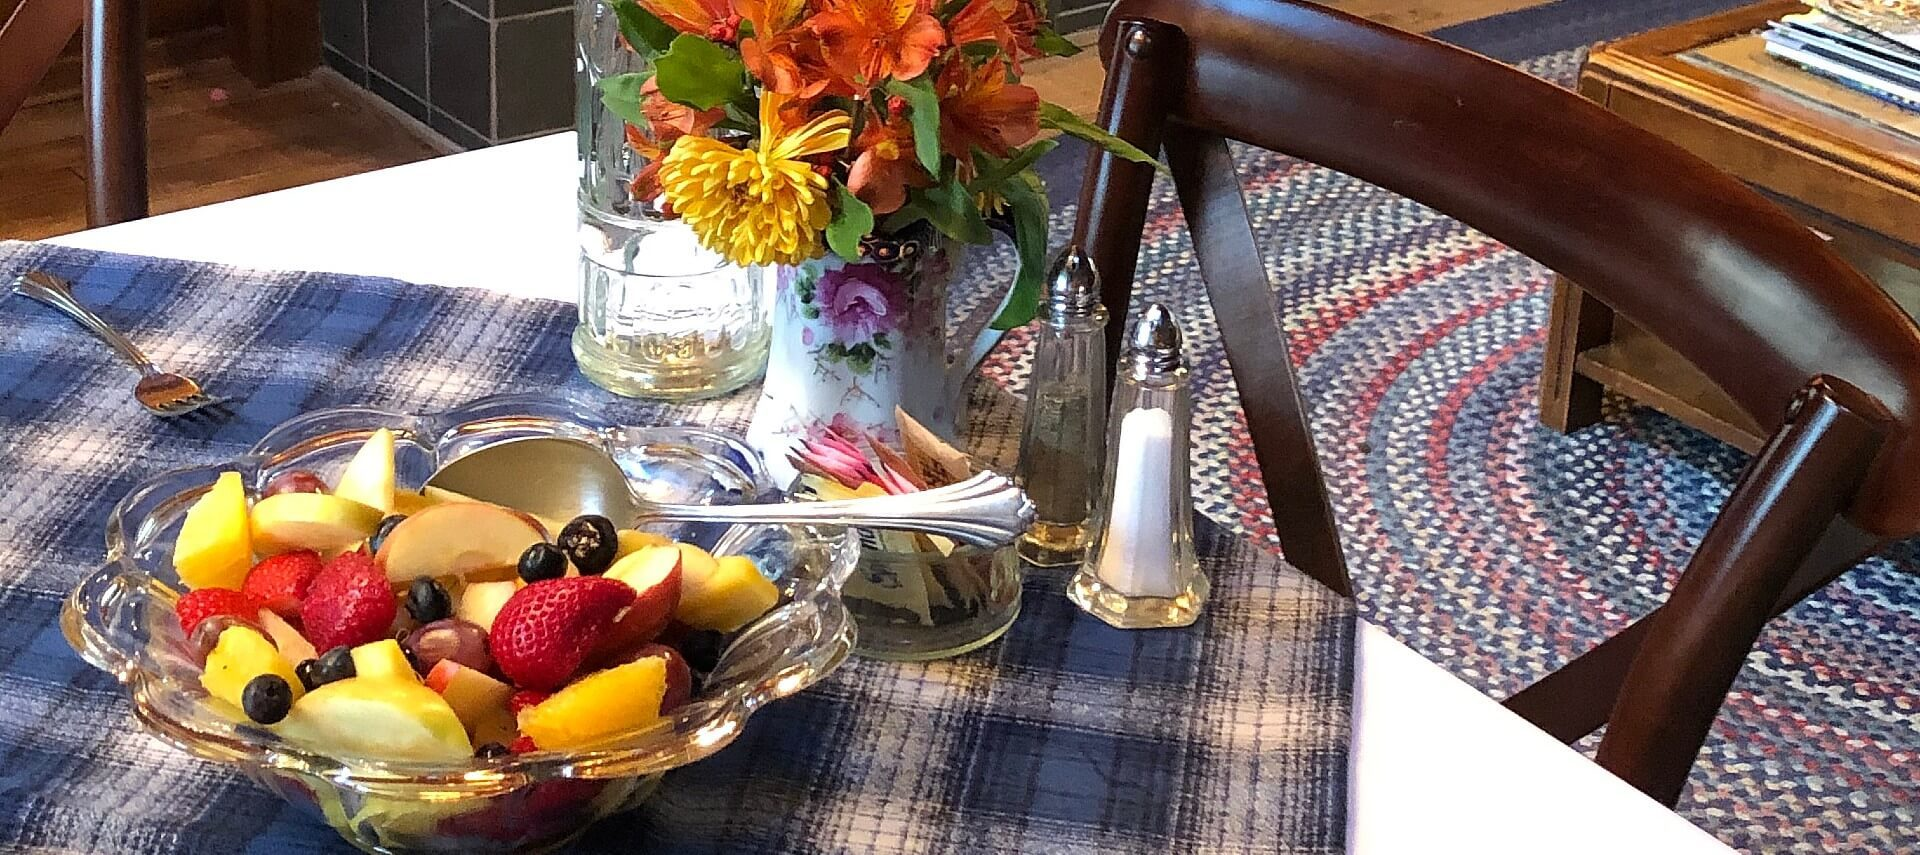 Table with blue plaid cloth holding glass bowl of fruit, vase with flowers, salt and pepper and dish of sugar packets